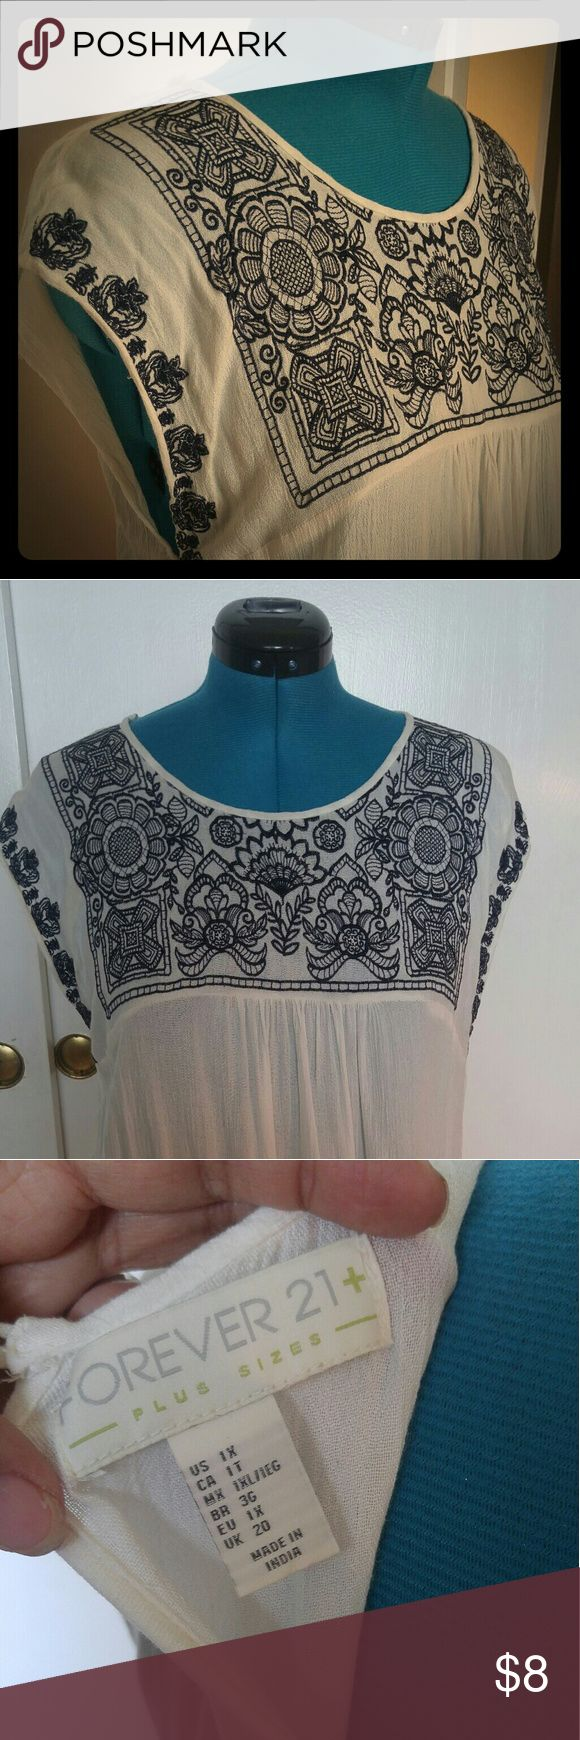 Forever 21 Plus - Boho Tunic Gently used white tunic top with navy blue embroidery - perfectly ligbt for those hot summer days and nights!  Its small enough as a Size 12 ! Forever 21 Tops Tunics